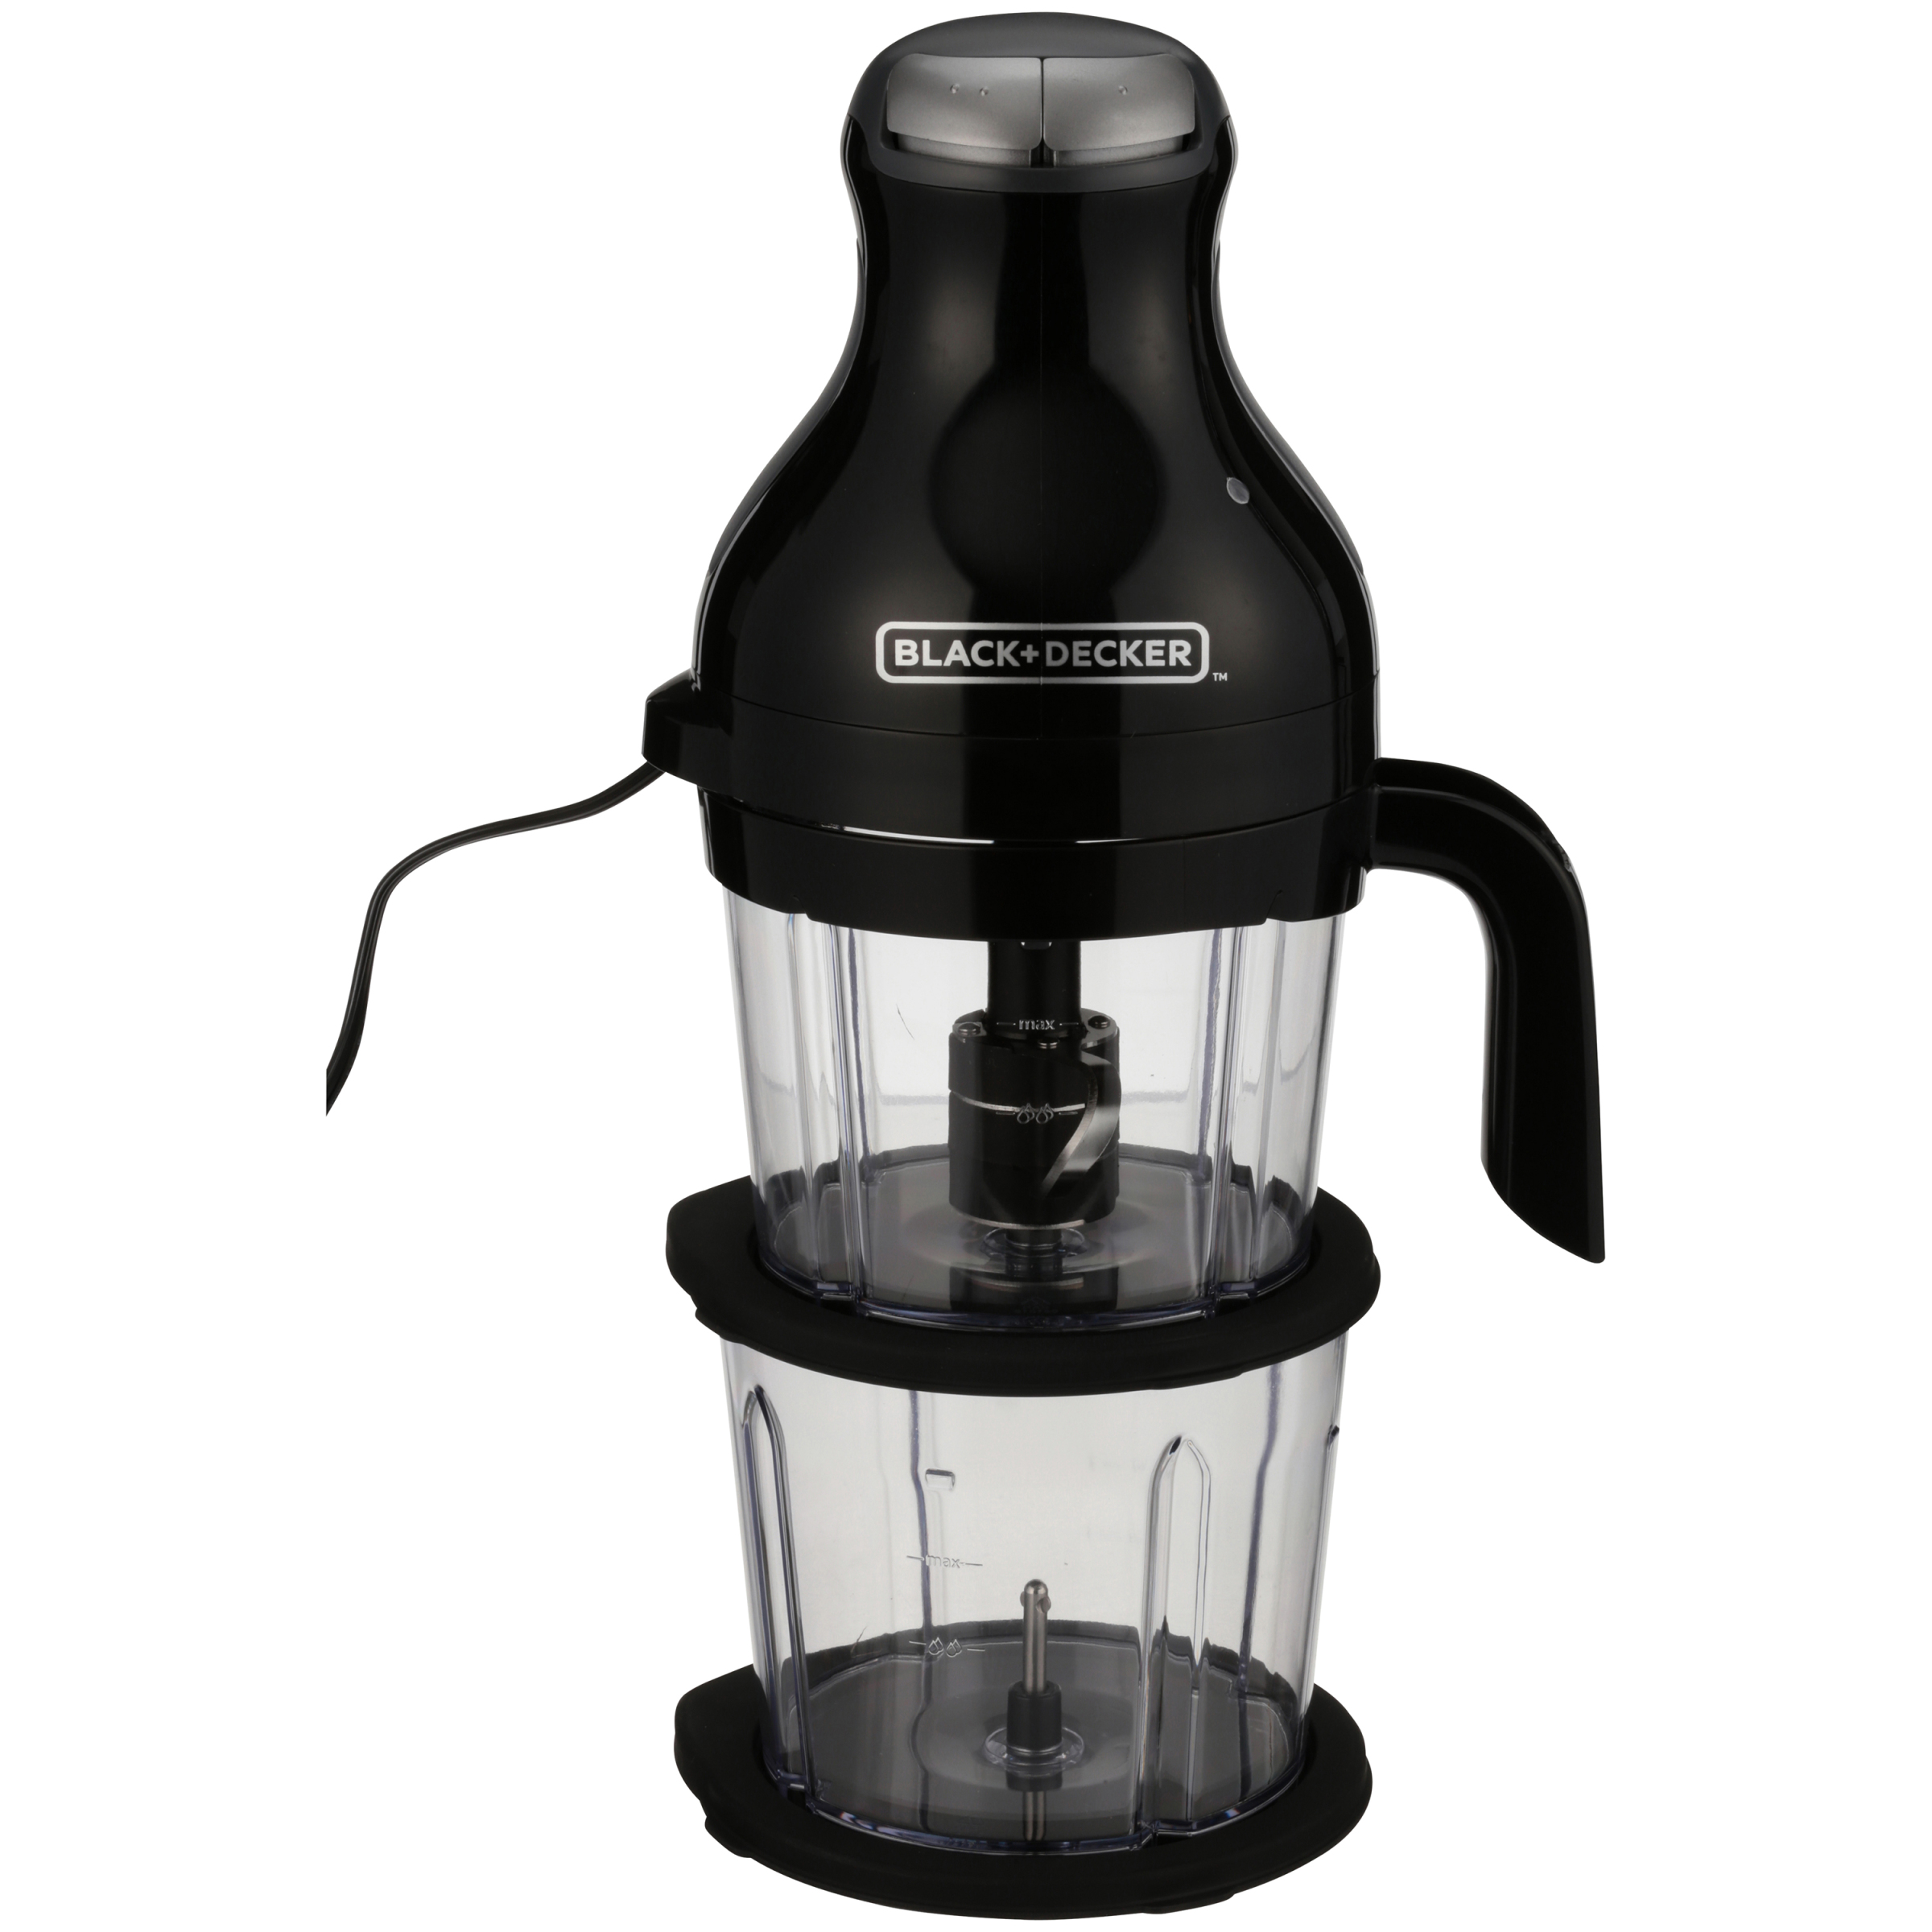 Black & Decker Prep & Blend Multi-Chopper, Black, PS2000BD by The Black & Decker Corporation and Spectrum Brands, Inc.